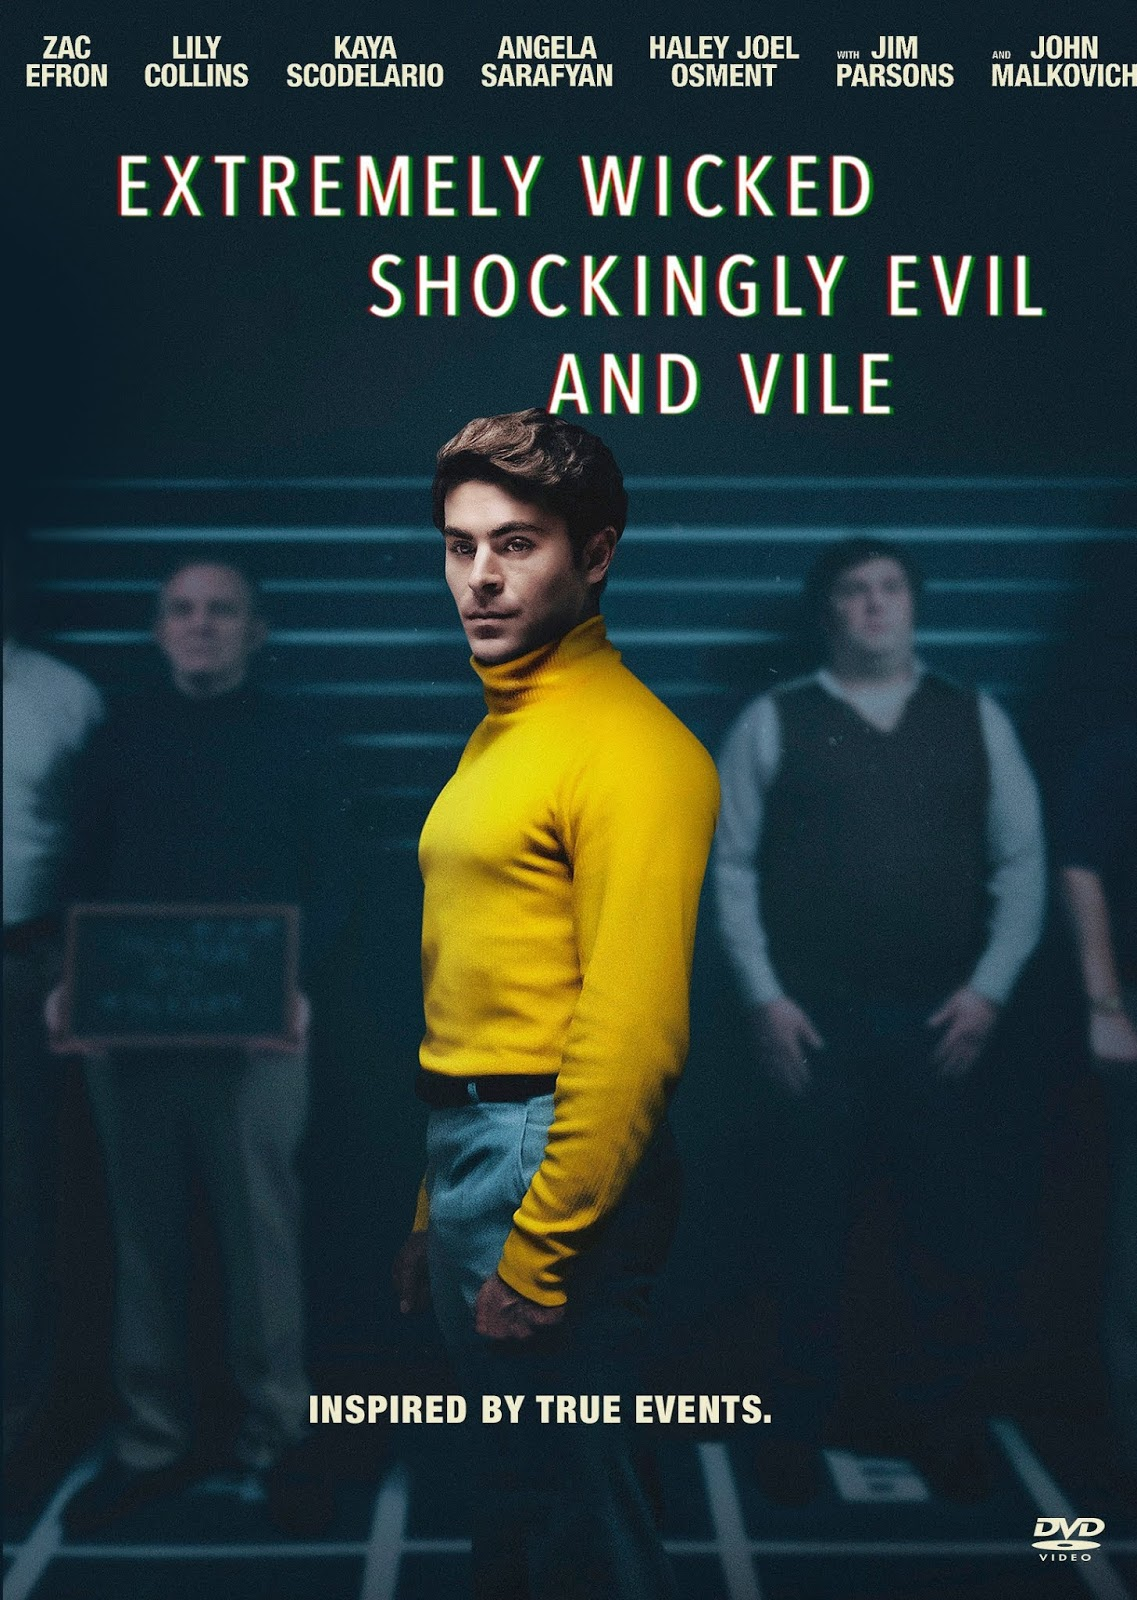 Extremely Wicked, Shockingly Evil and Vile [2019] [DVD R4] [NTSC] [Latino]